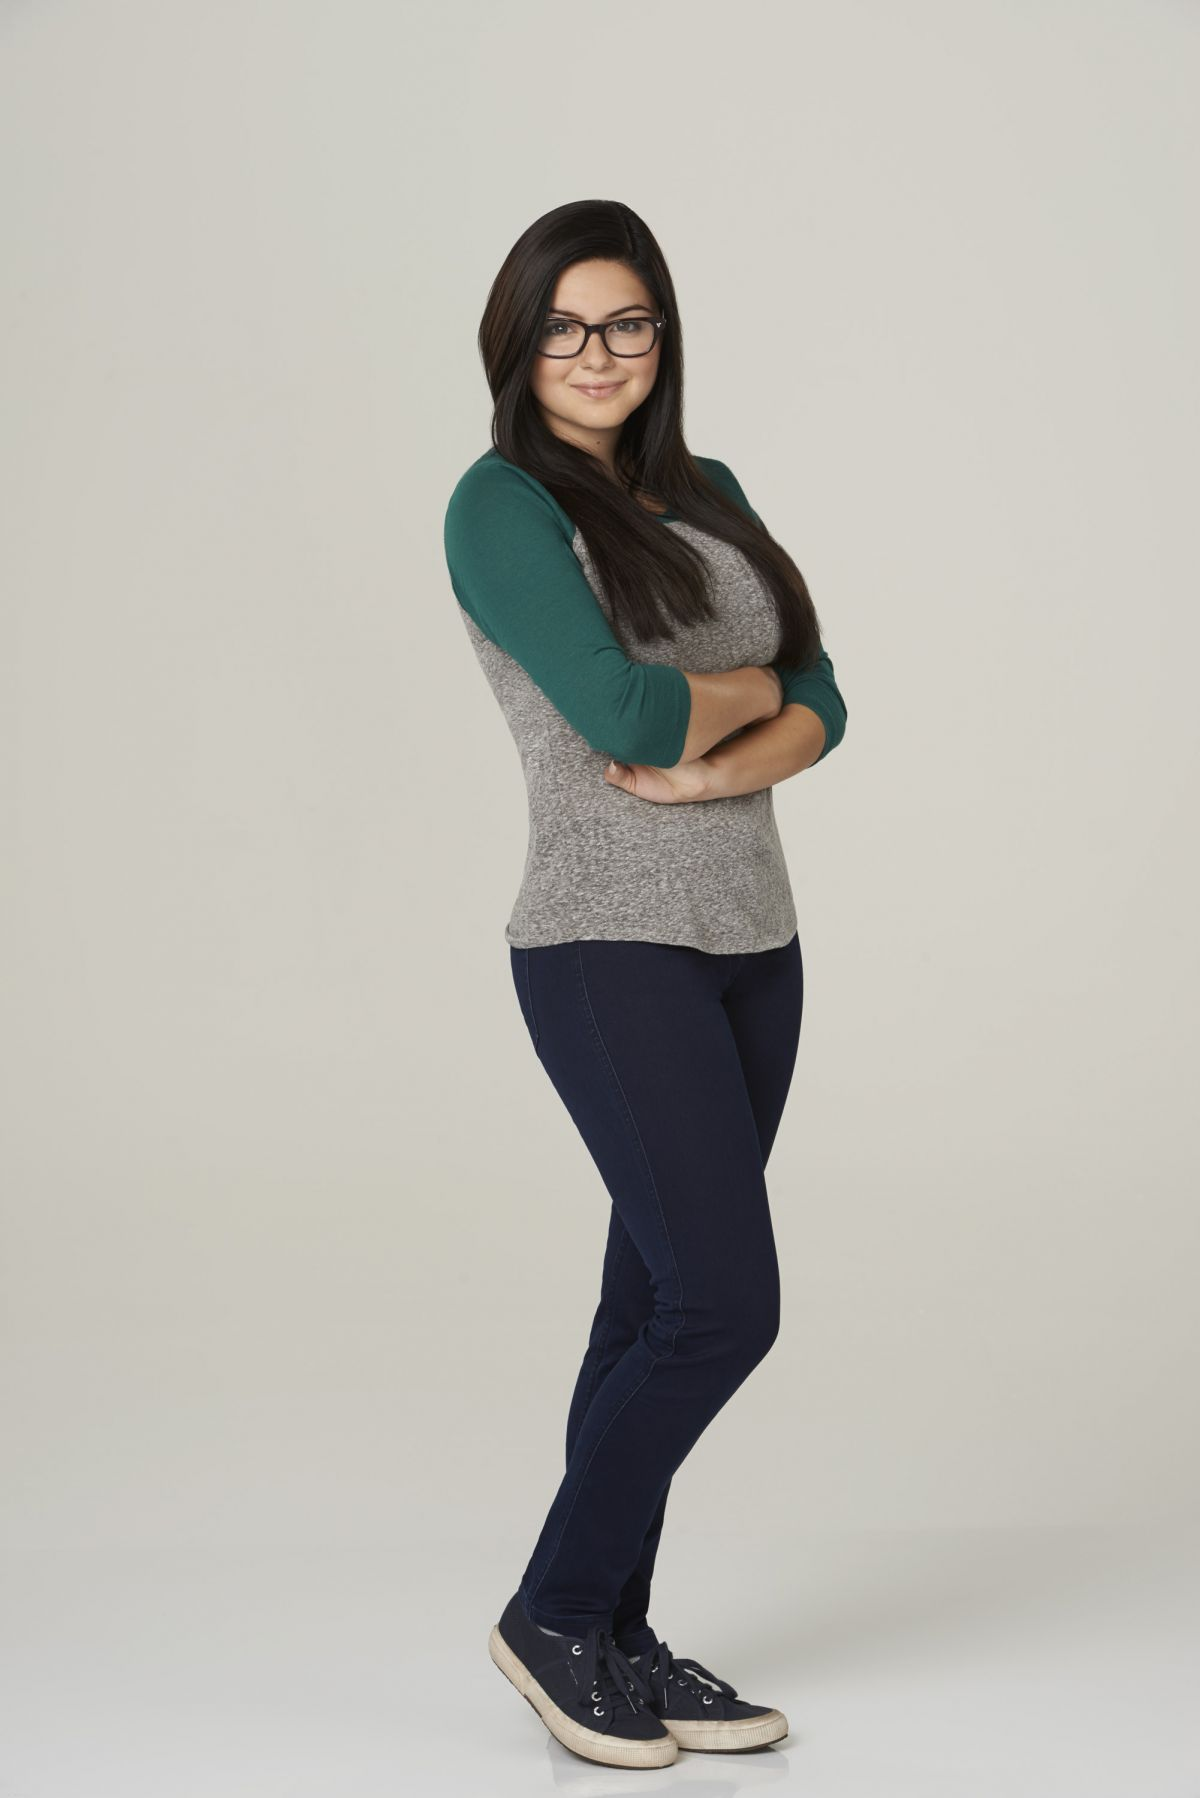 Season 6 Alex Dunphy Ariel Winter Ariel Winter Modelos Fotos